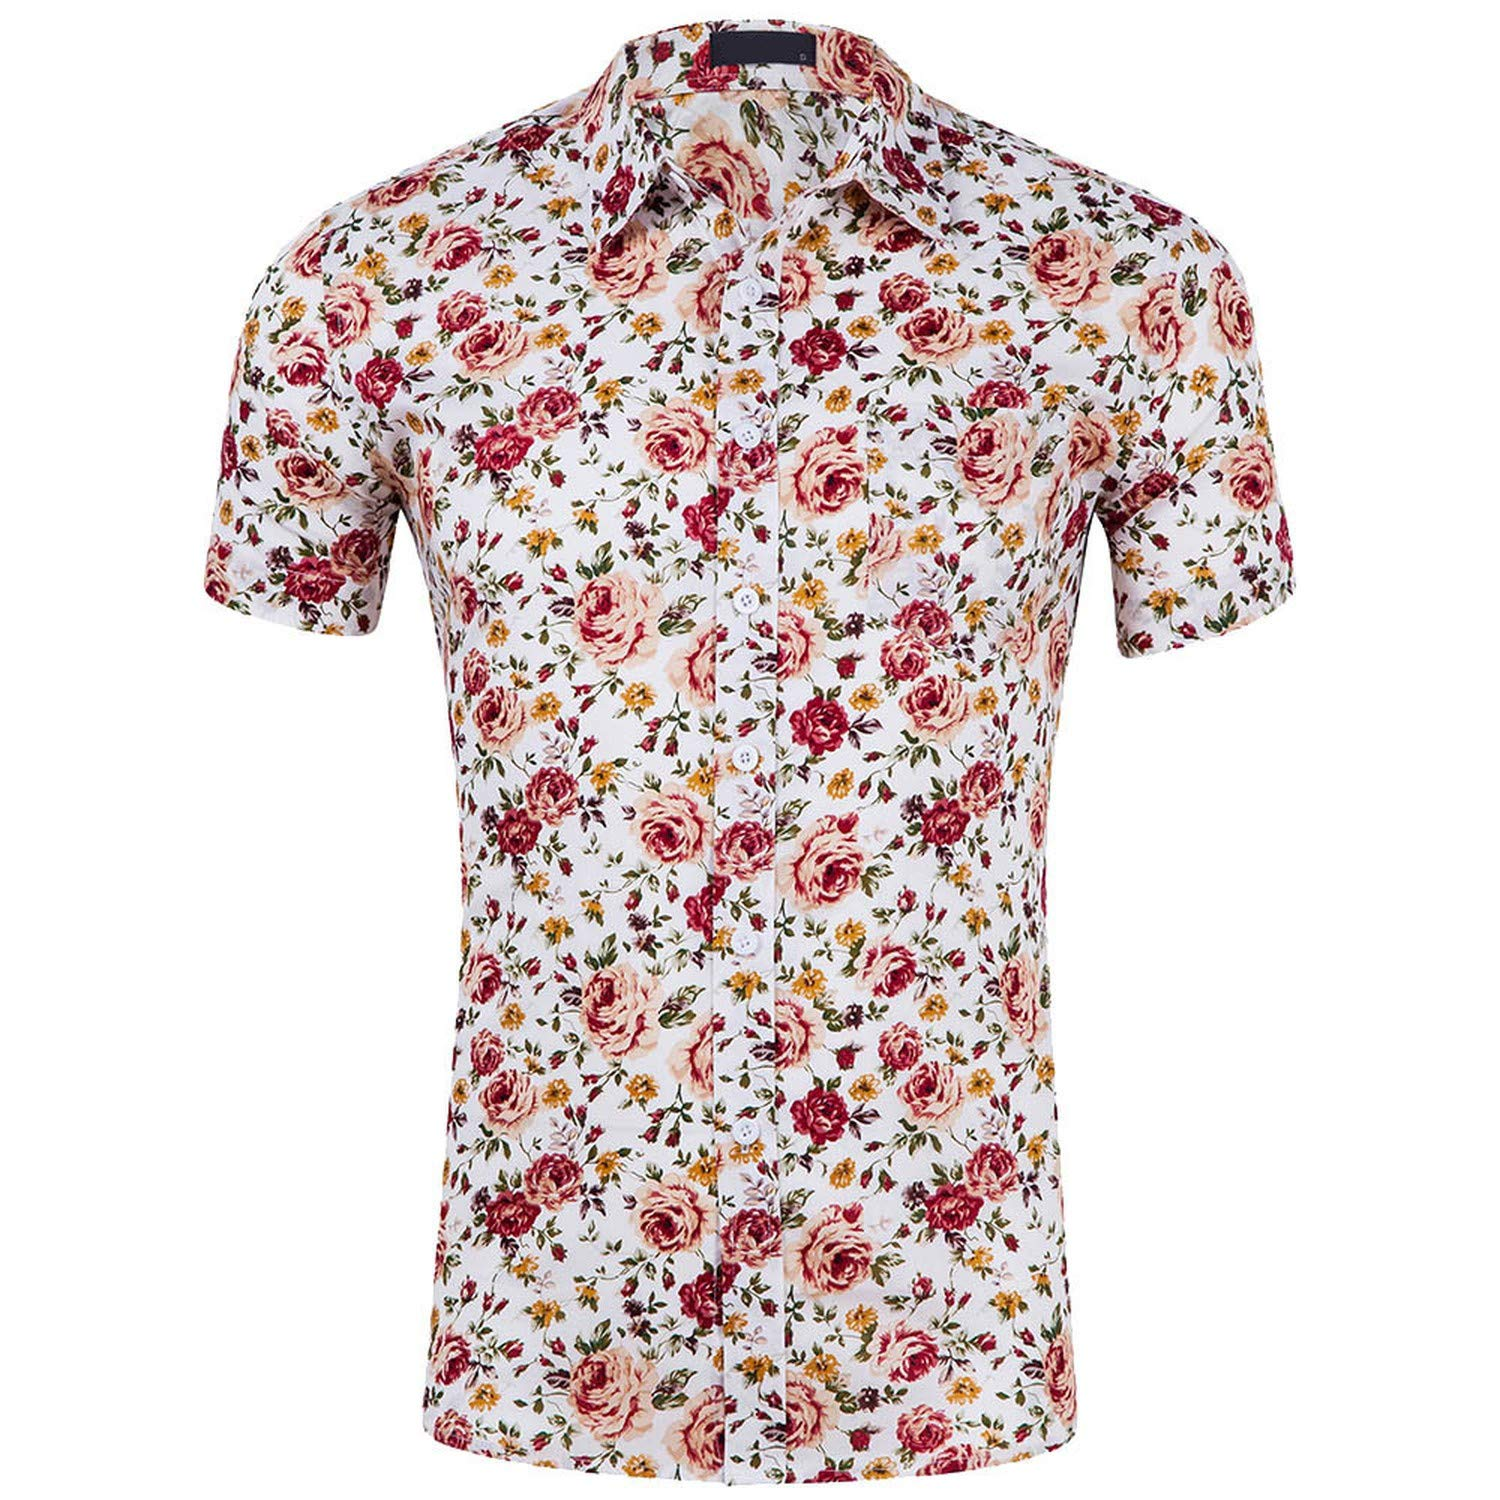 Blouse Men Casual Printed Short Sleeve Slim Shirts Male Clothing Slim Fit Floral Shirt